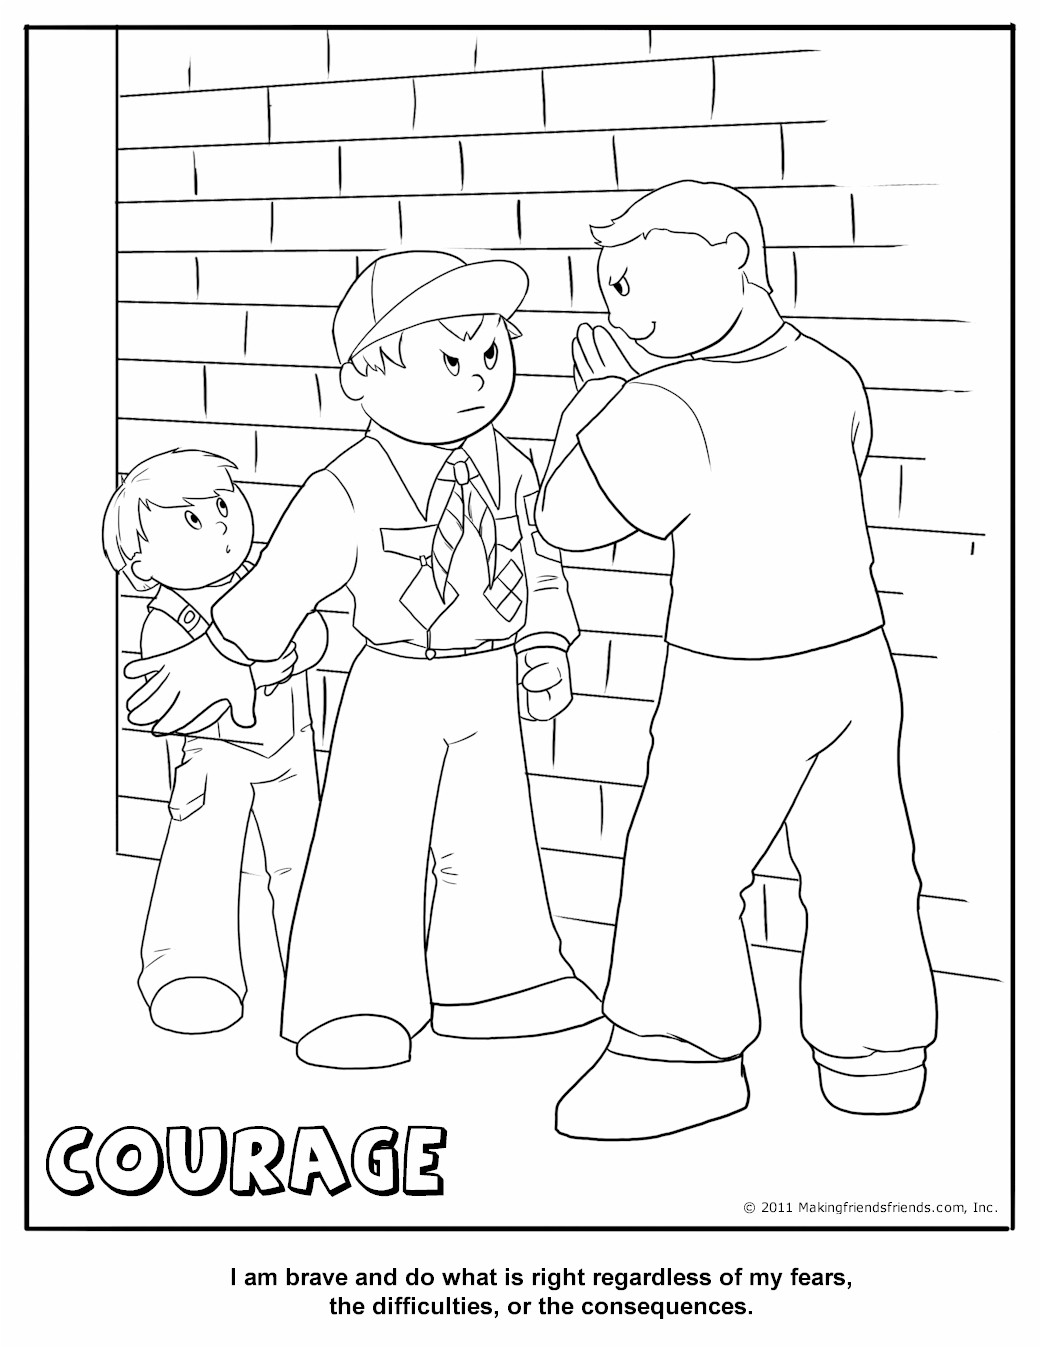 Cub Scout Courage Coloring Page